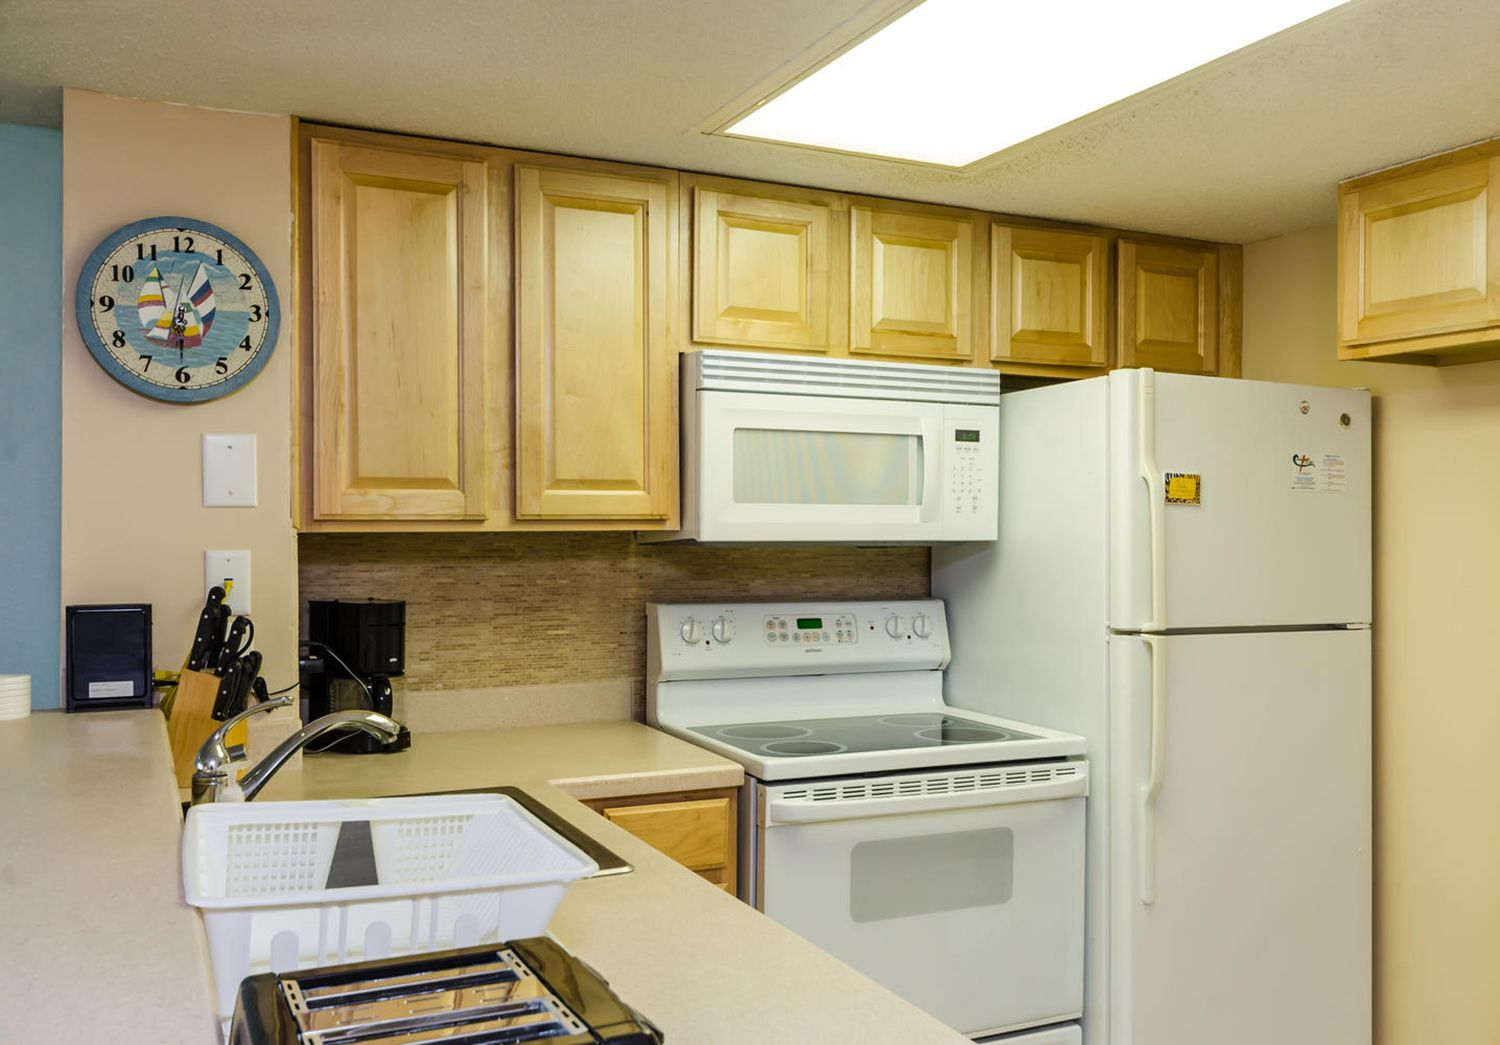 Cooking made easy in this fully equipped kitchen Home